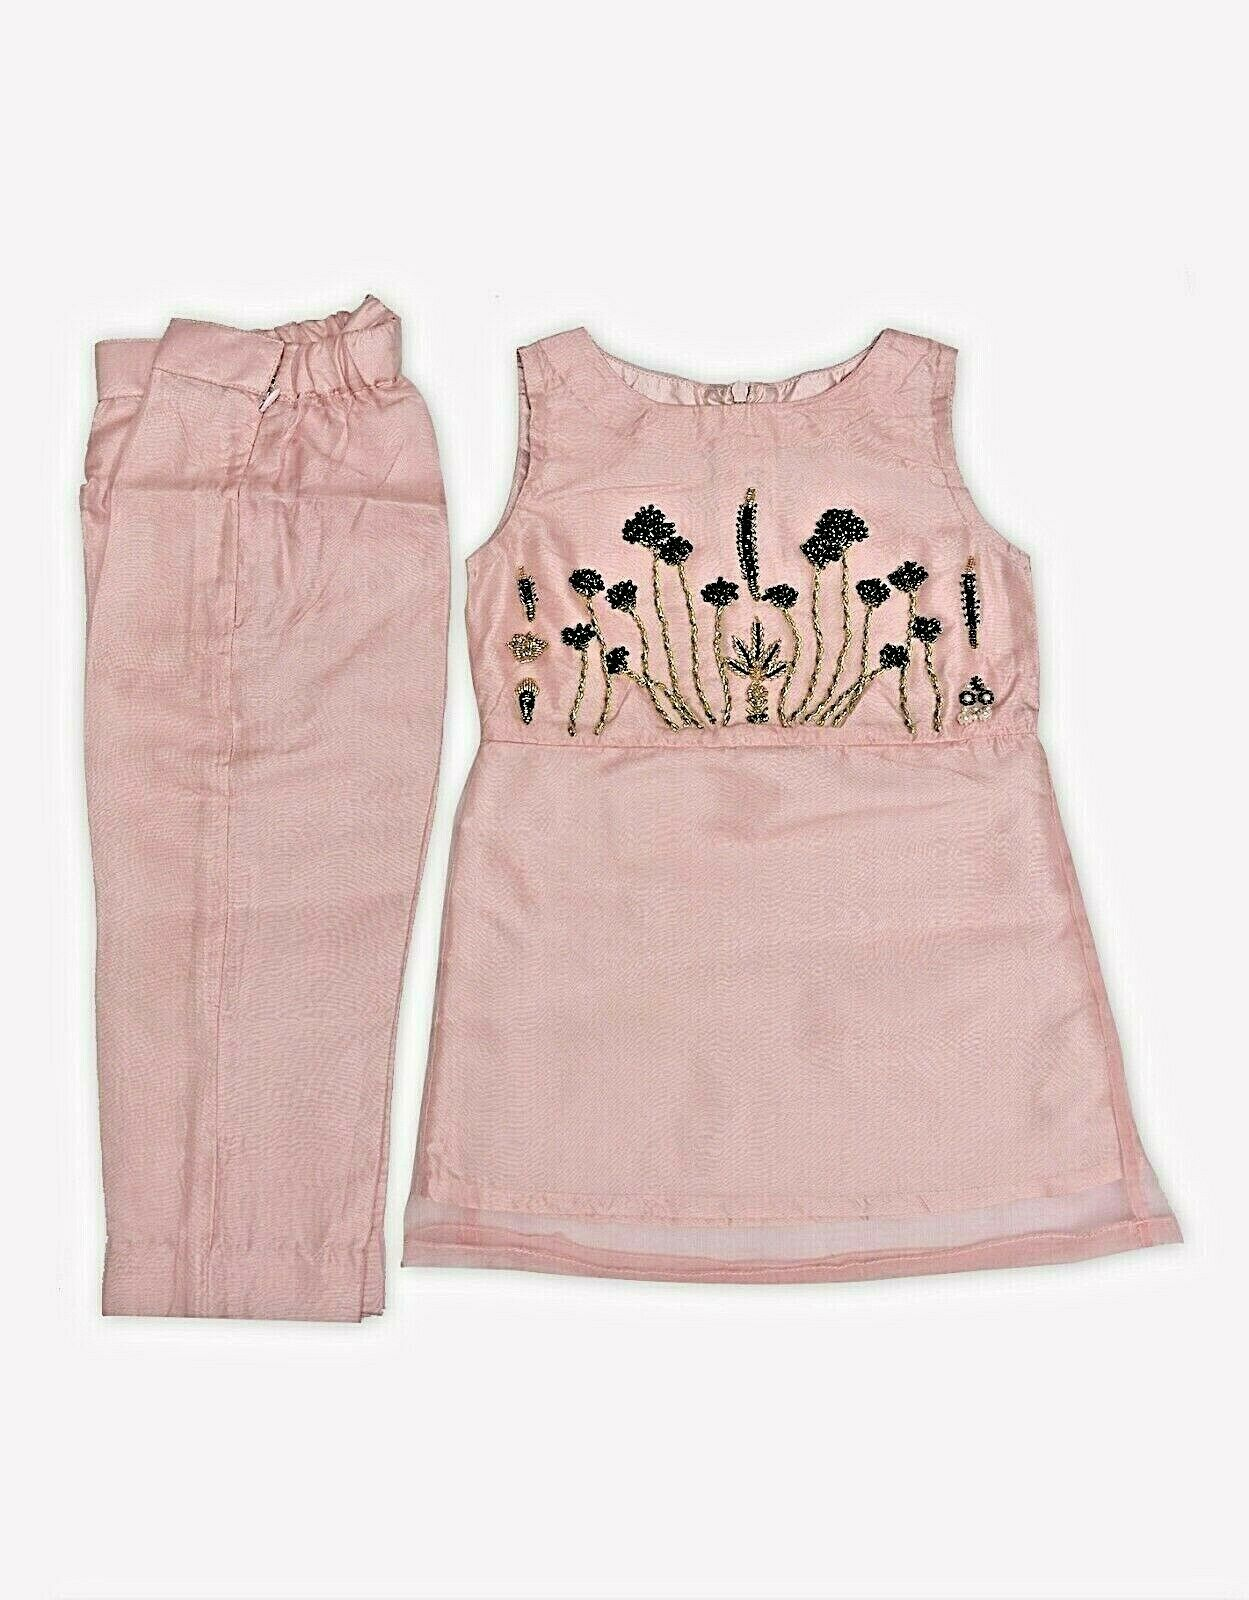 Pakistani/ Indian girl's clothes, Minnie Minors Boutique, Baby pink, Pret wear